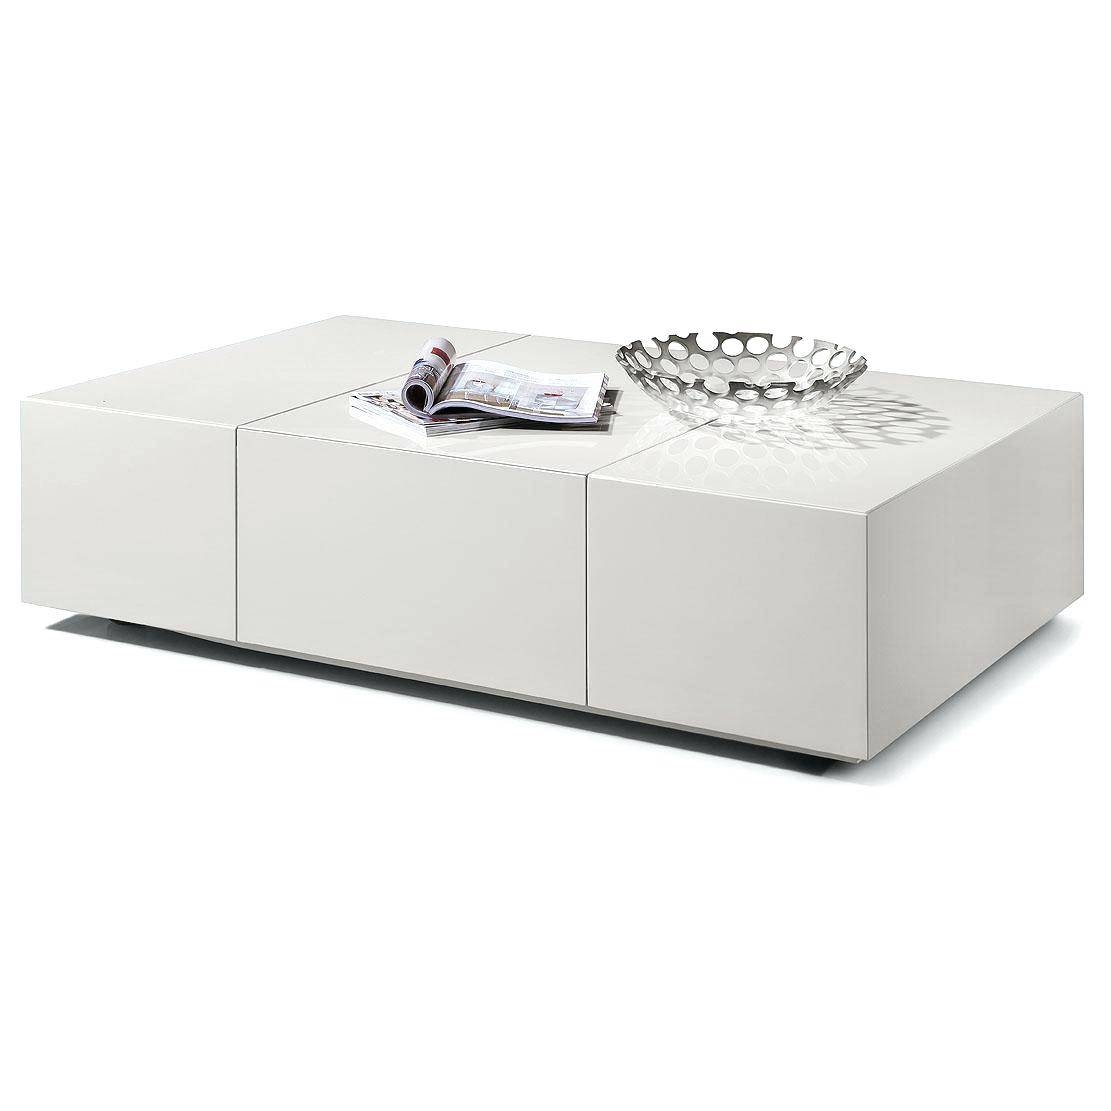 Coffee Table ~ White High Gloss Coffee Table Pictures Modernsquare with regard to White Coffee Tables With Baskets (Image 9 of 30)